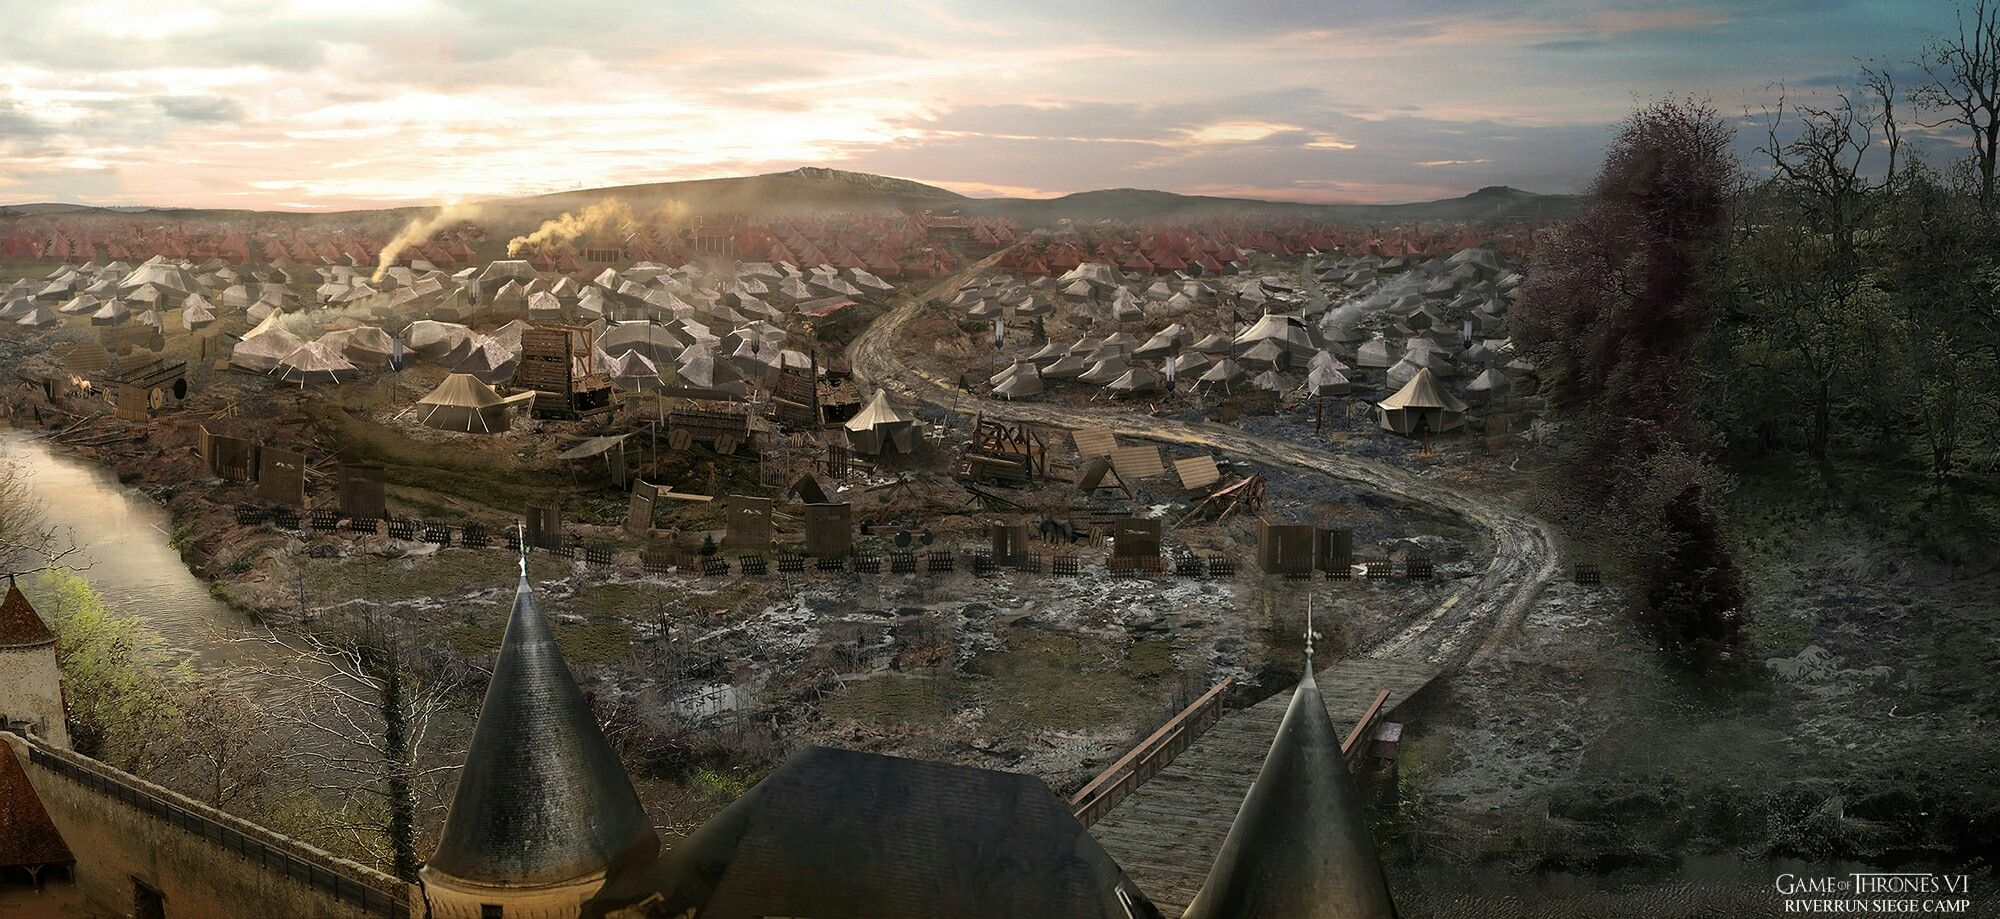 The siege at RiverRun